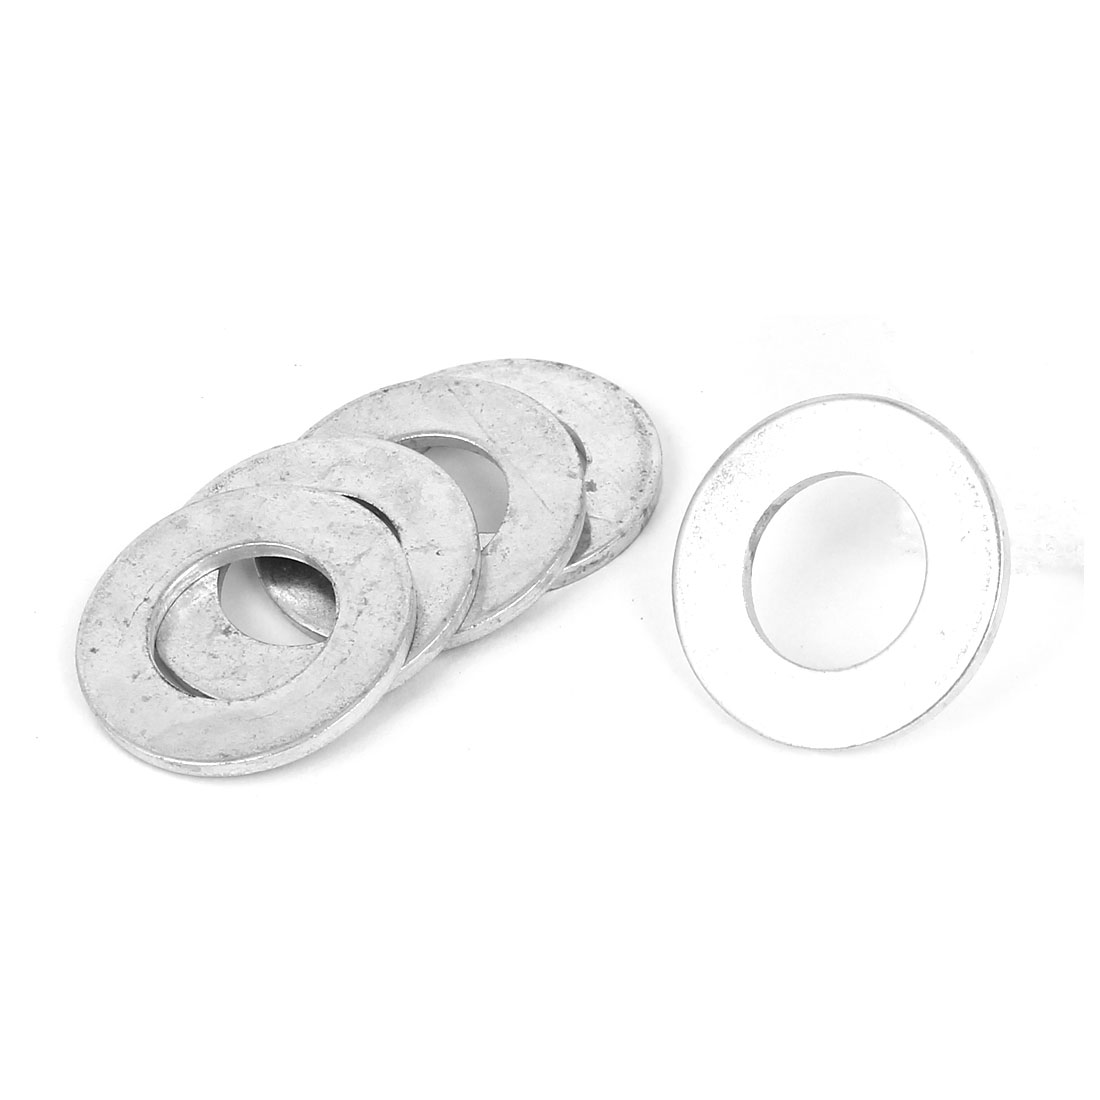 14mm x 28mm x 2mm Zinc Plated Flat Pads Washers Gaskets Fasteners GB97 5PCS